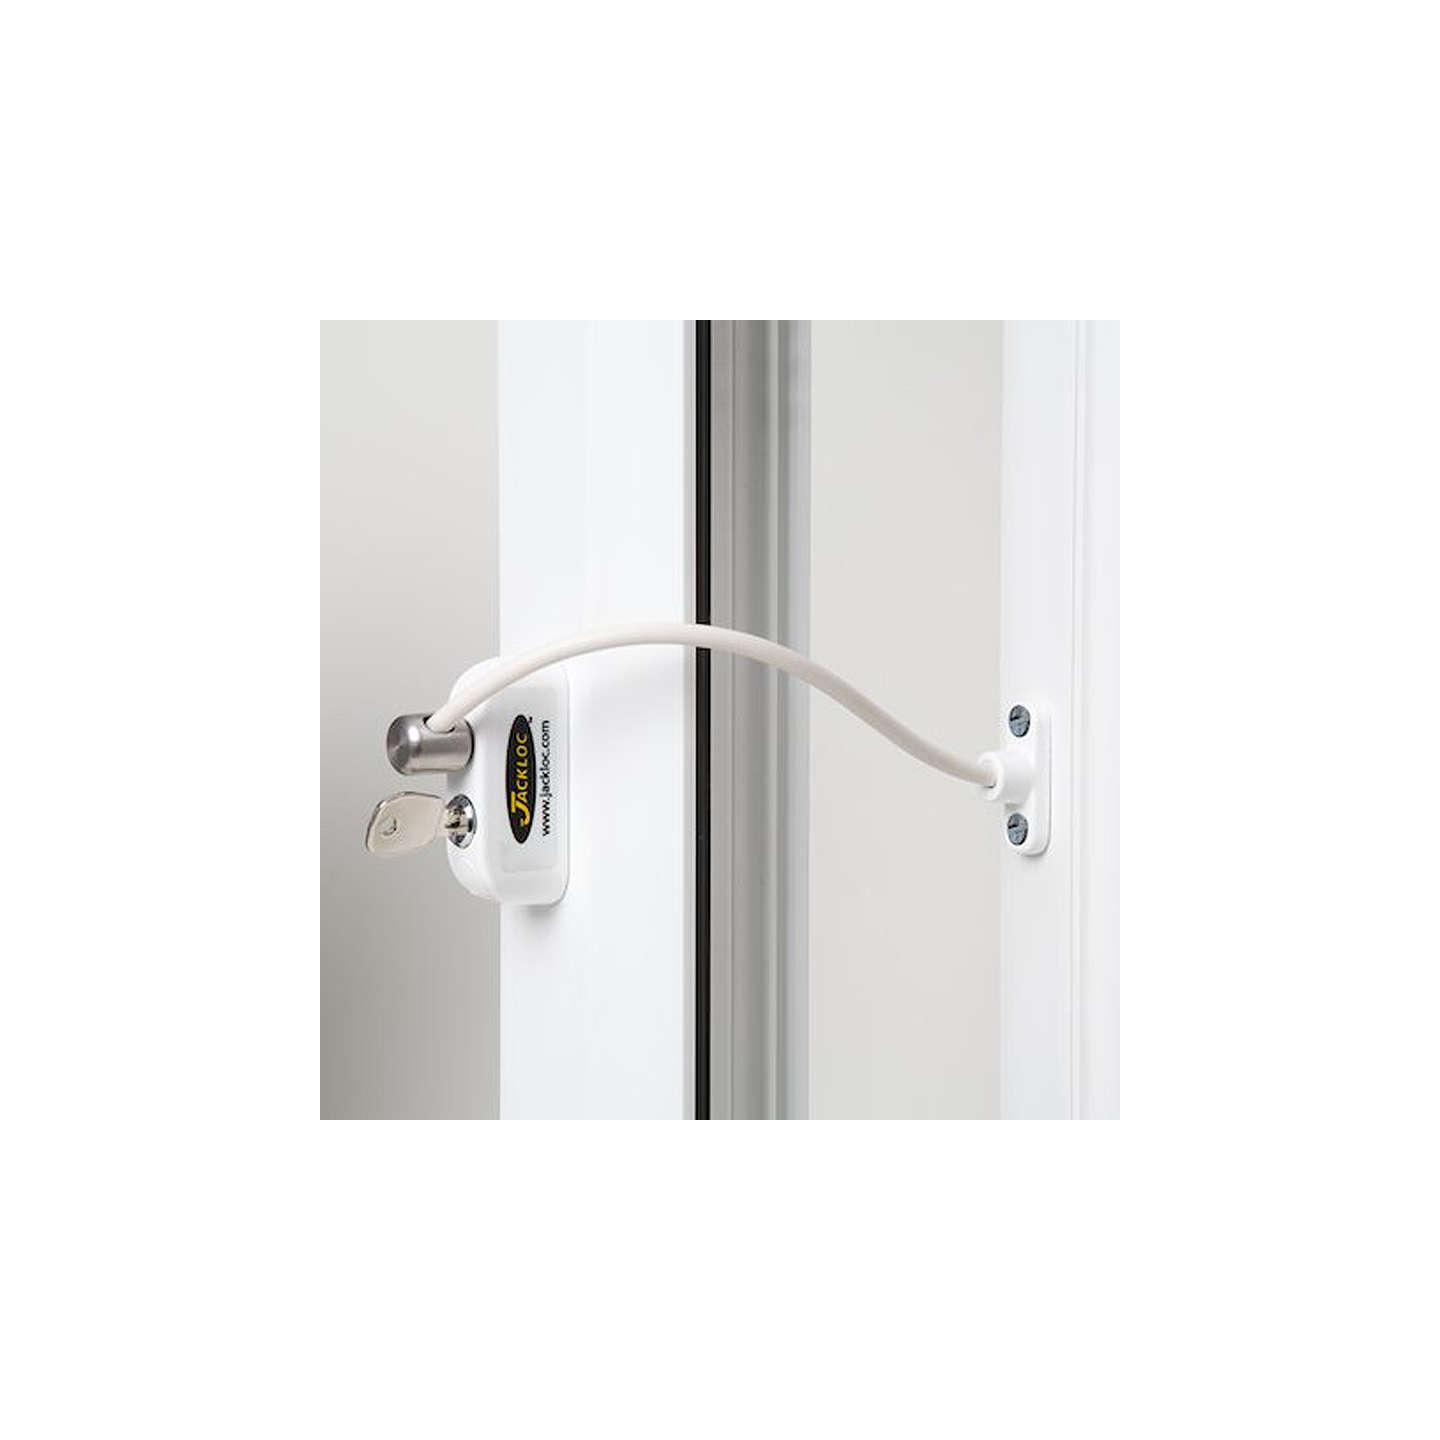 BuyJackloc Window Restrictor, White Online at johnlewis.com